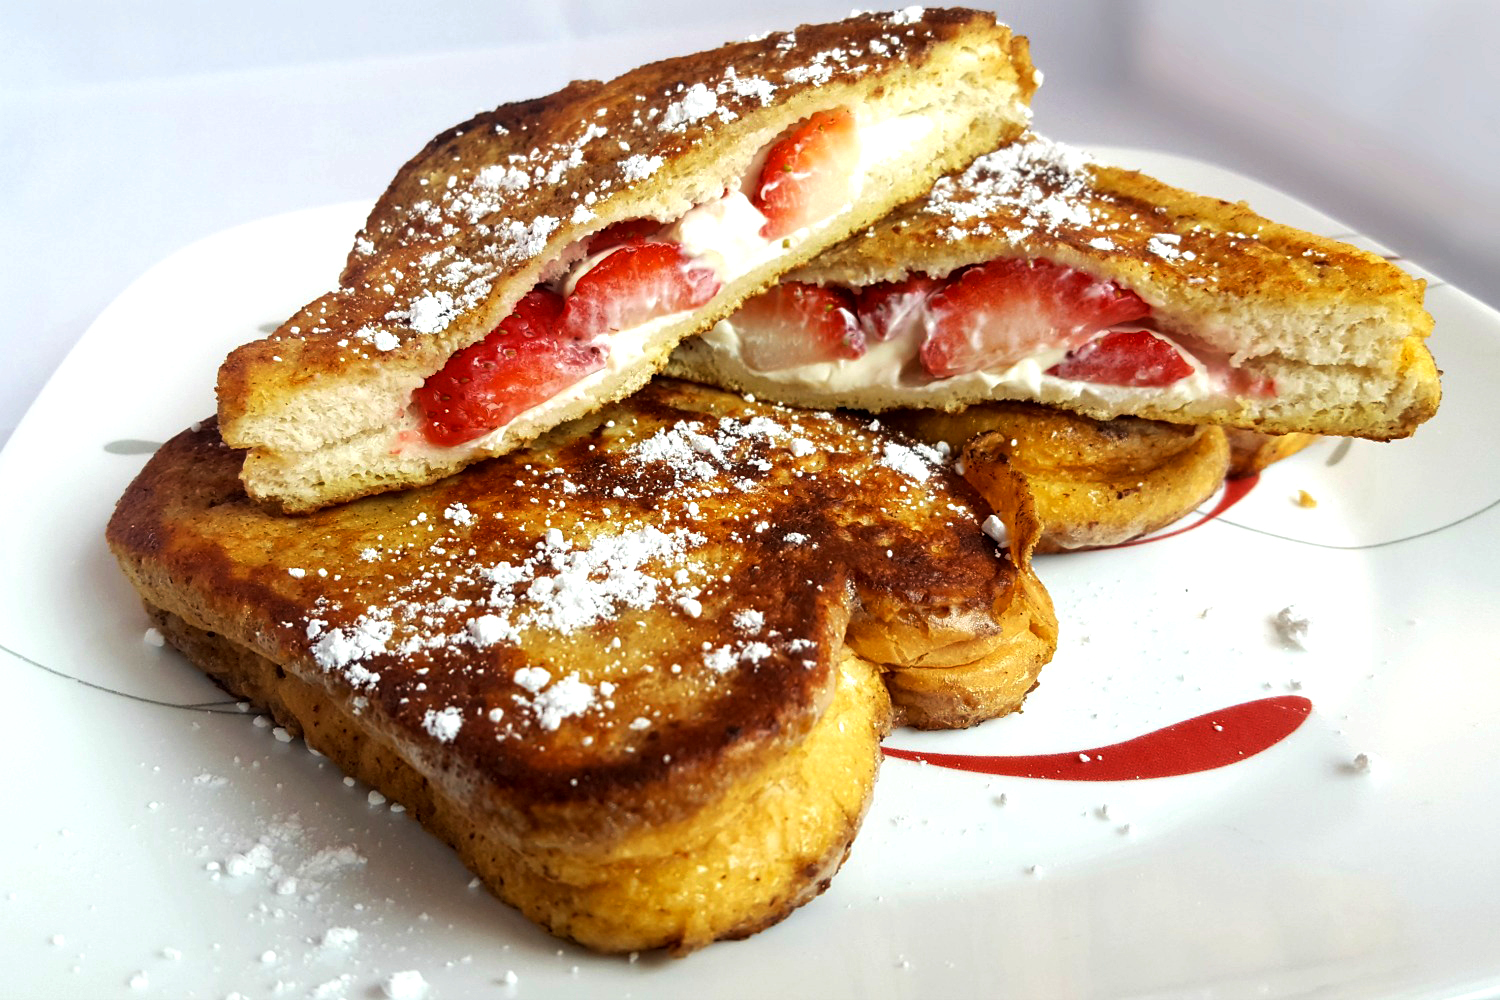 Stawberry Cream Cheese Stuffed French Toast